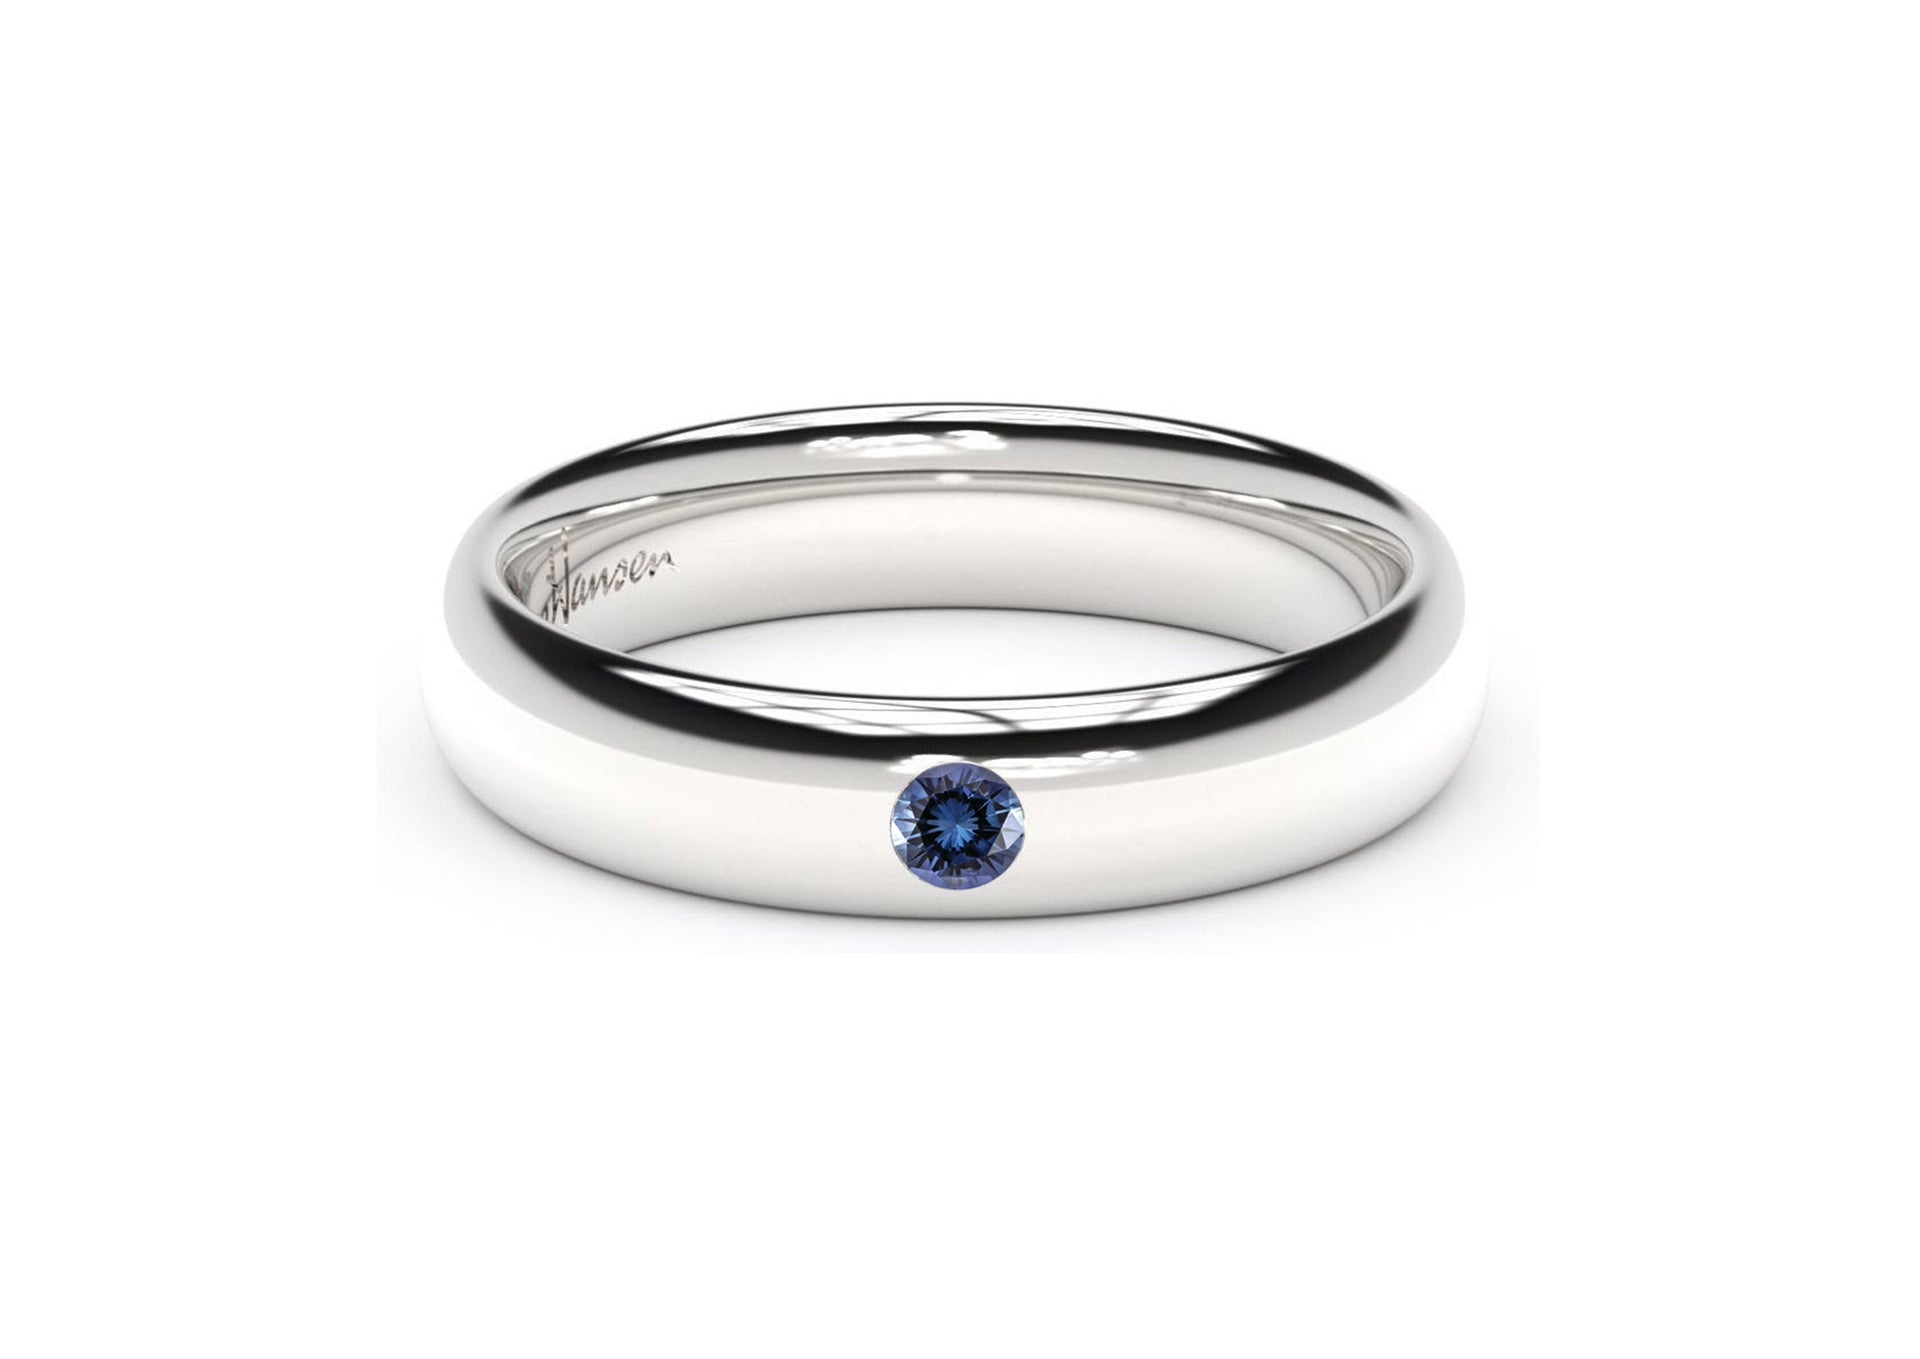 Sleek Gemstone Ring, White Gold & Platinum